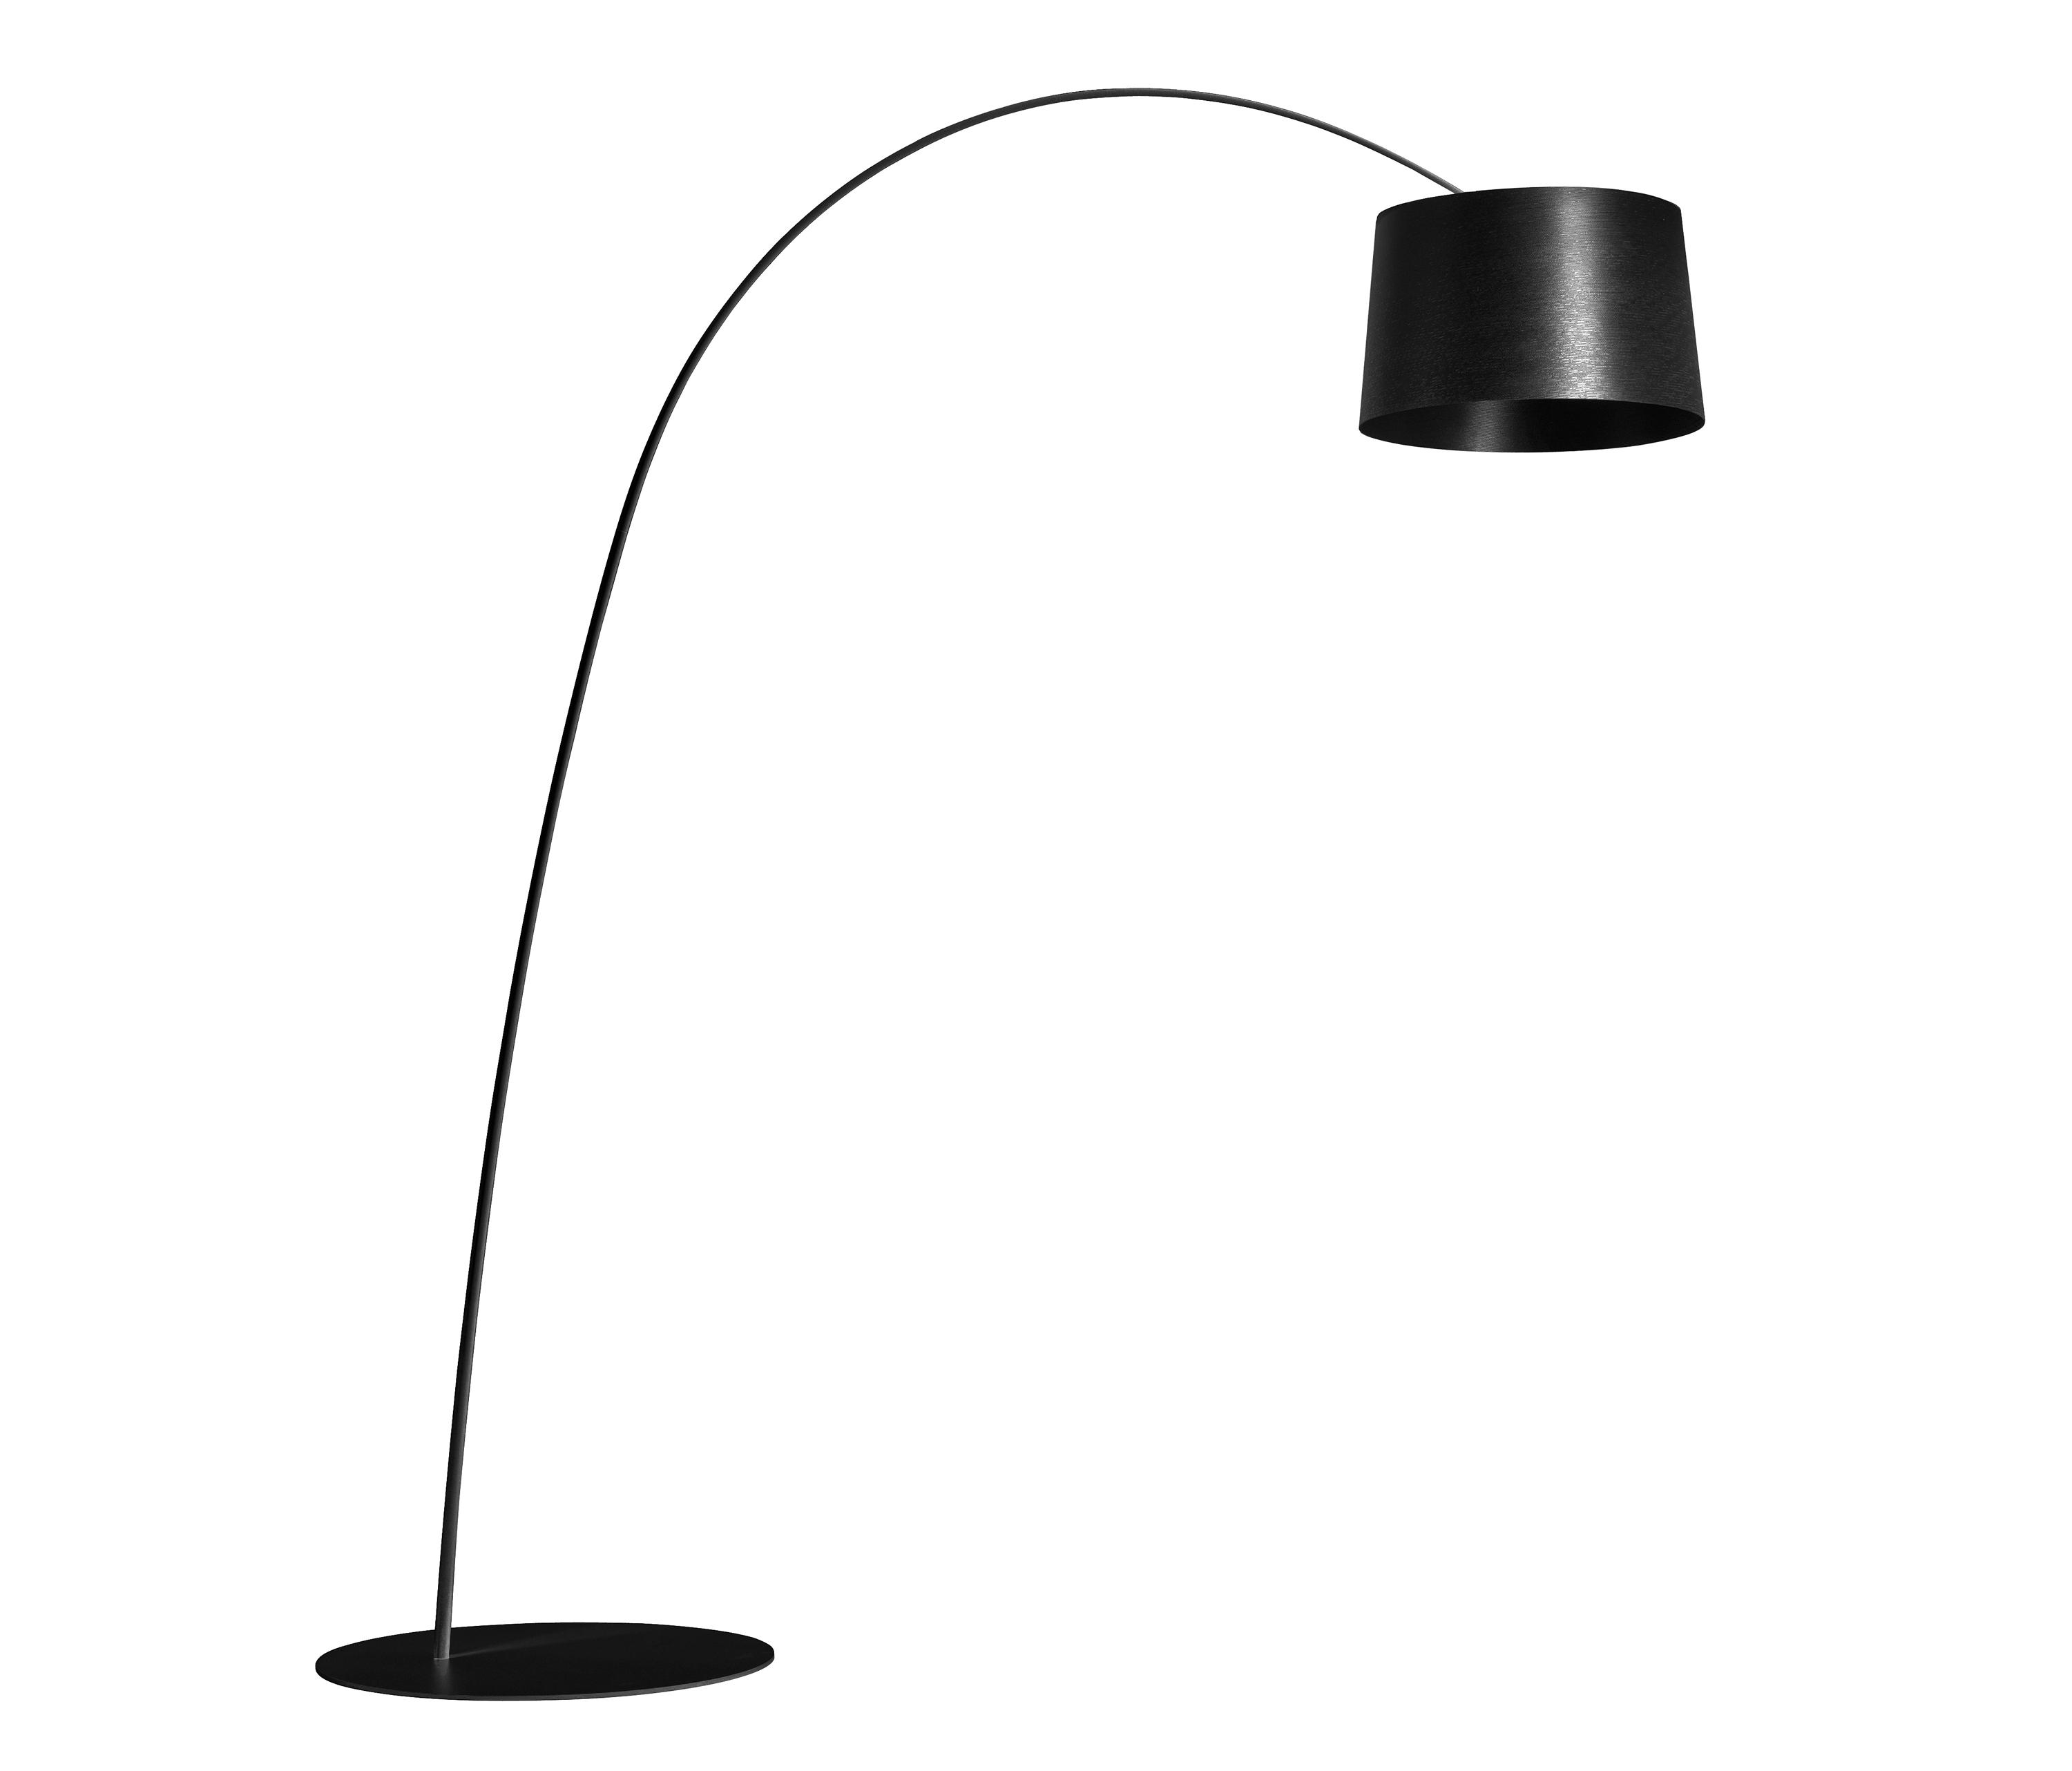 lamps furniture master gooseneck for sunnex img f floor rubber vintage at sale id floors lighting lamp square